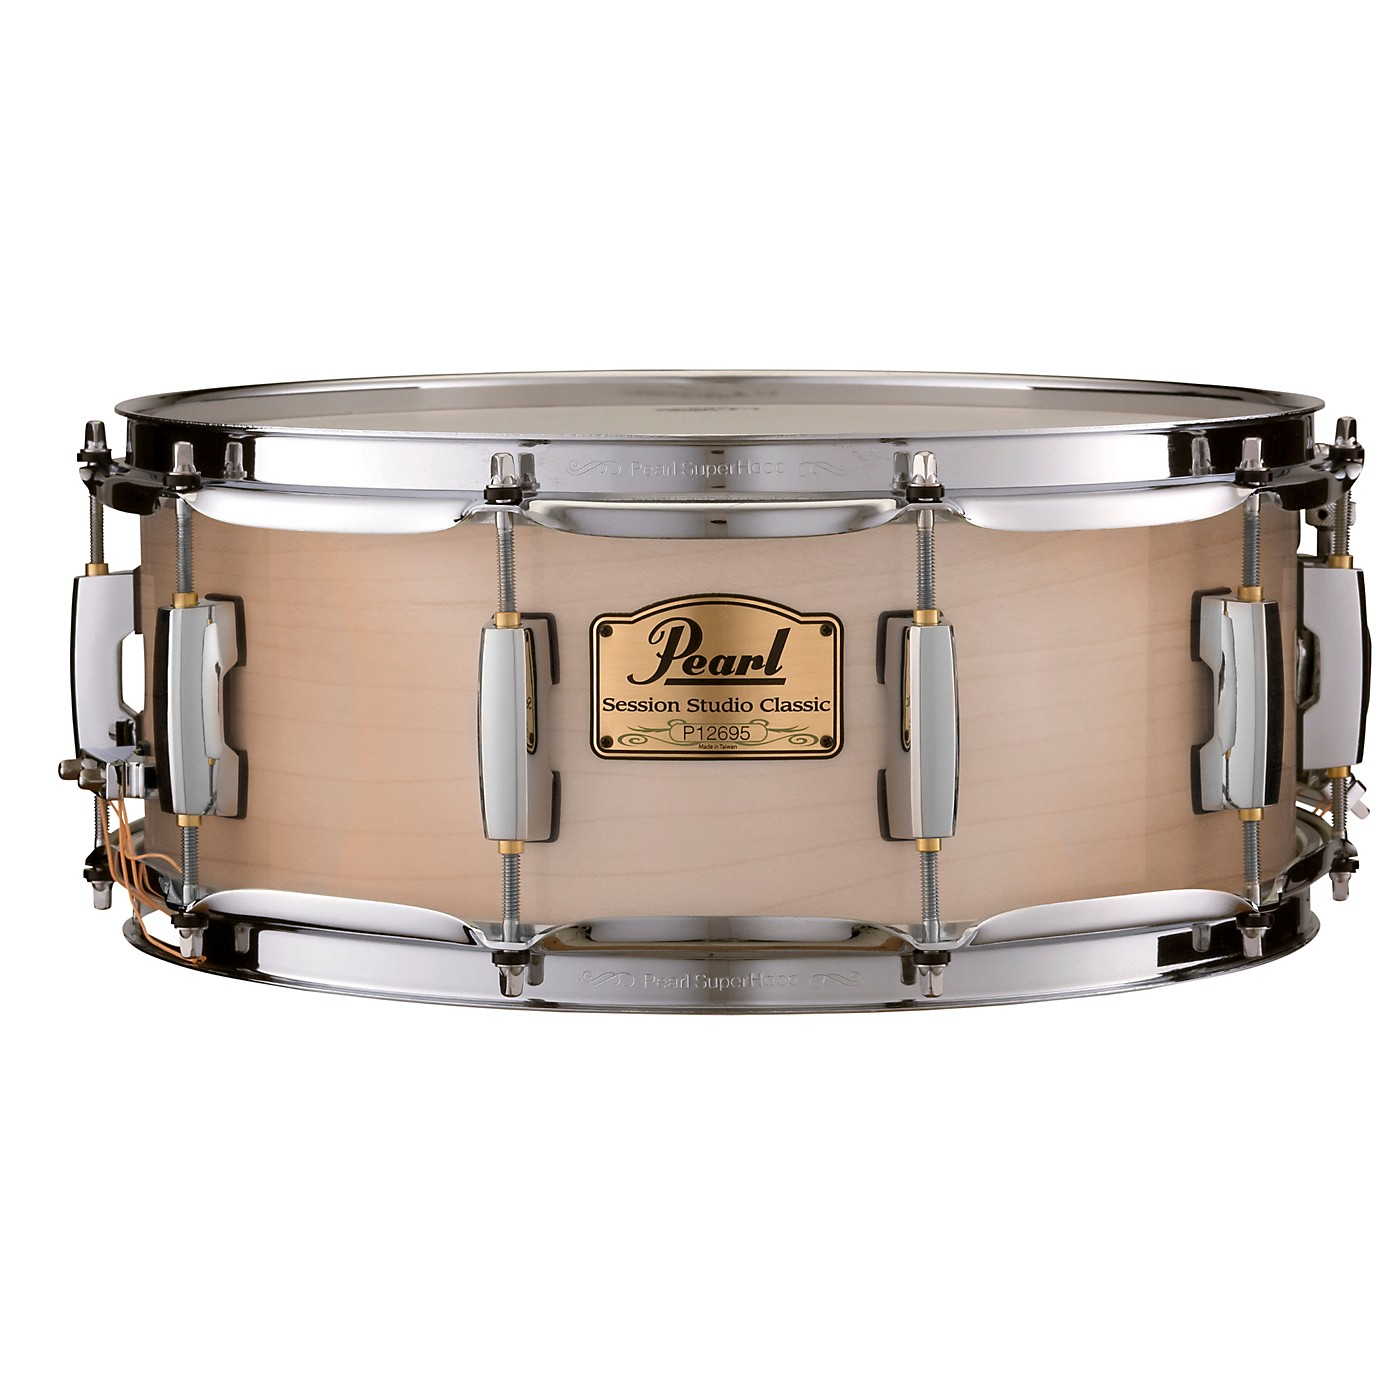 Pearl Session Studio Classic Snare thumbnail